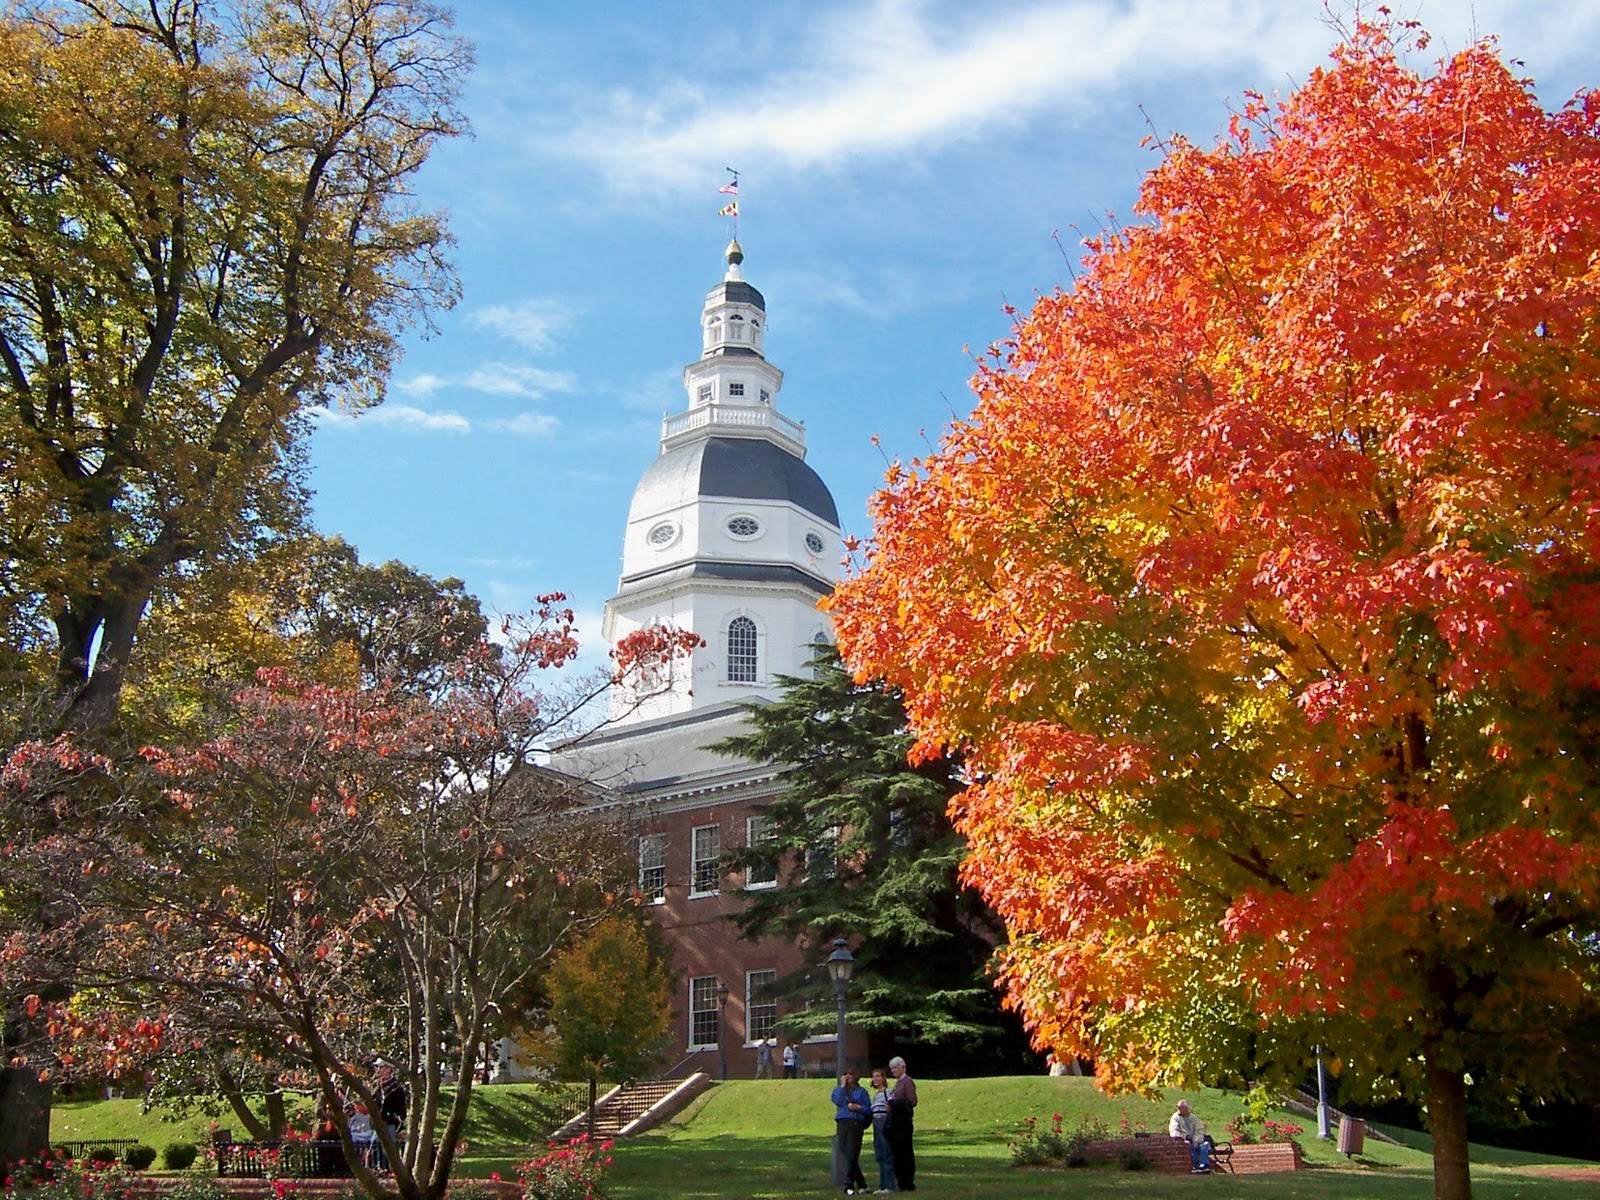 Fall Foliage Wallpaper Hd Via My Viewfinder Autumn In Annapolis